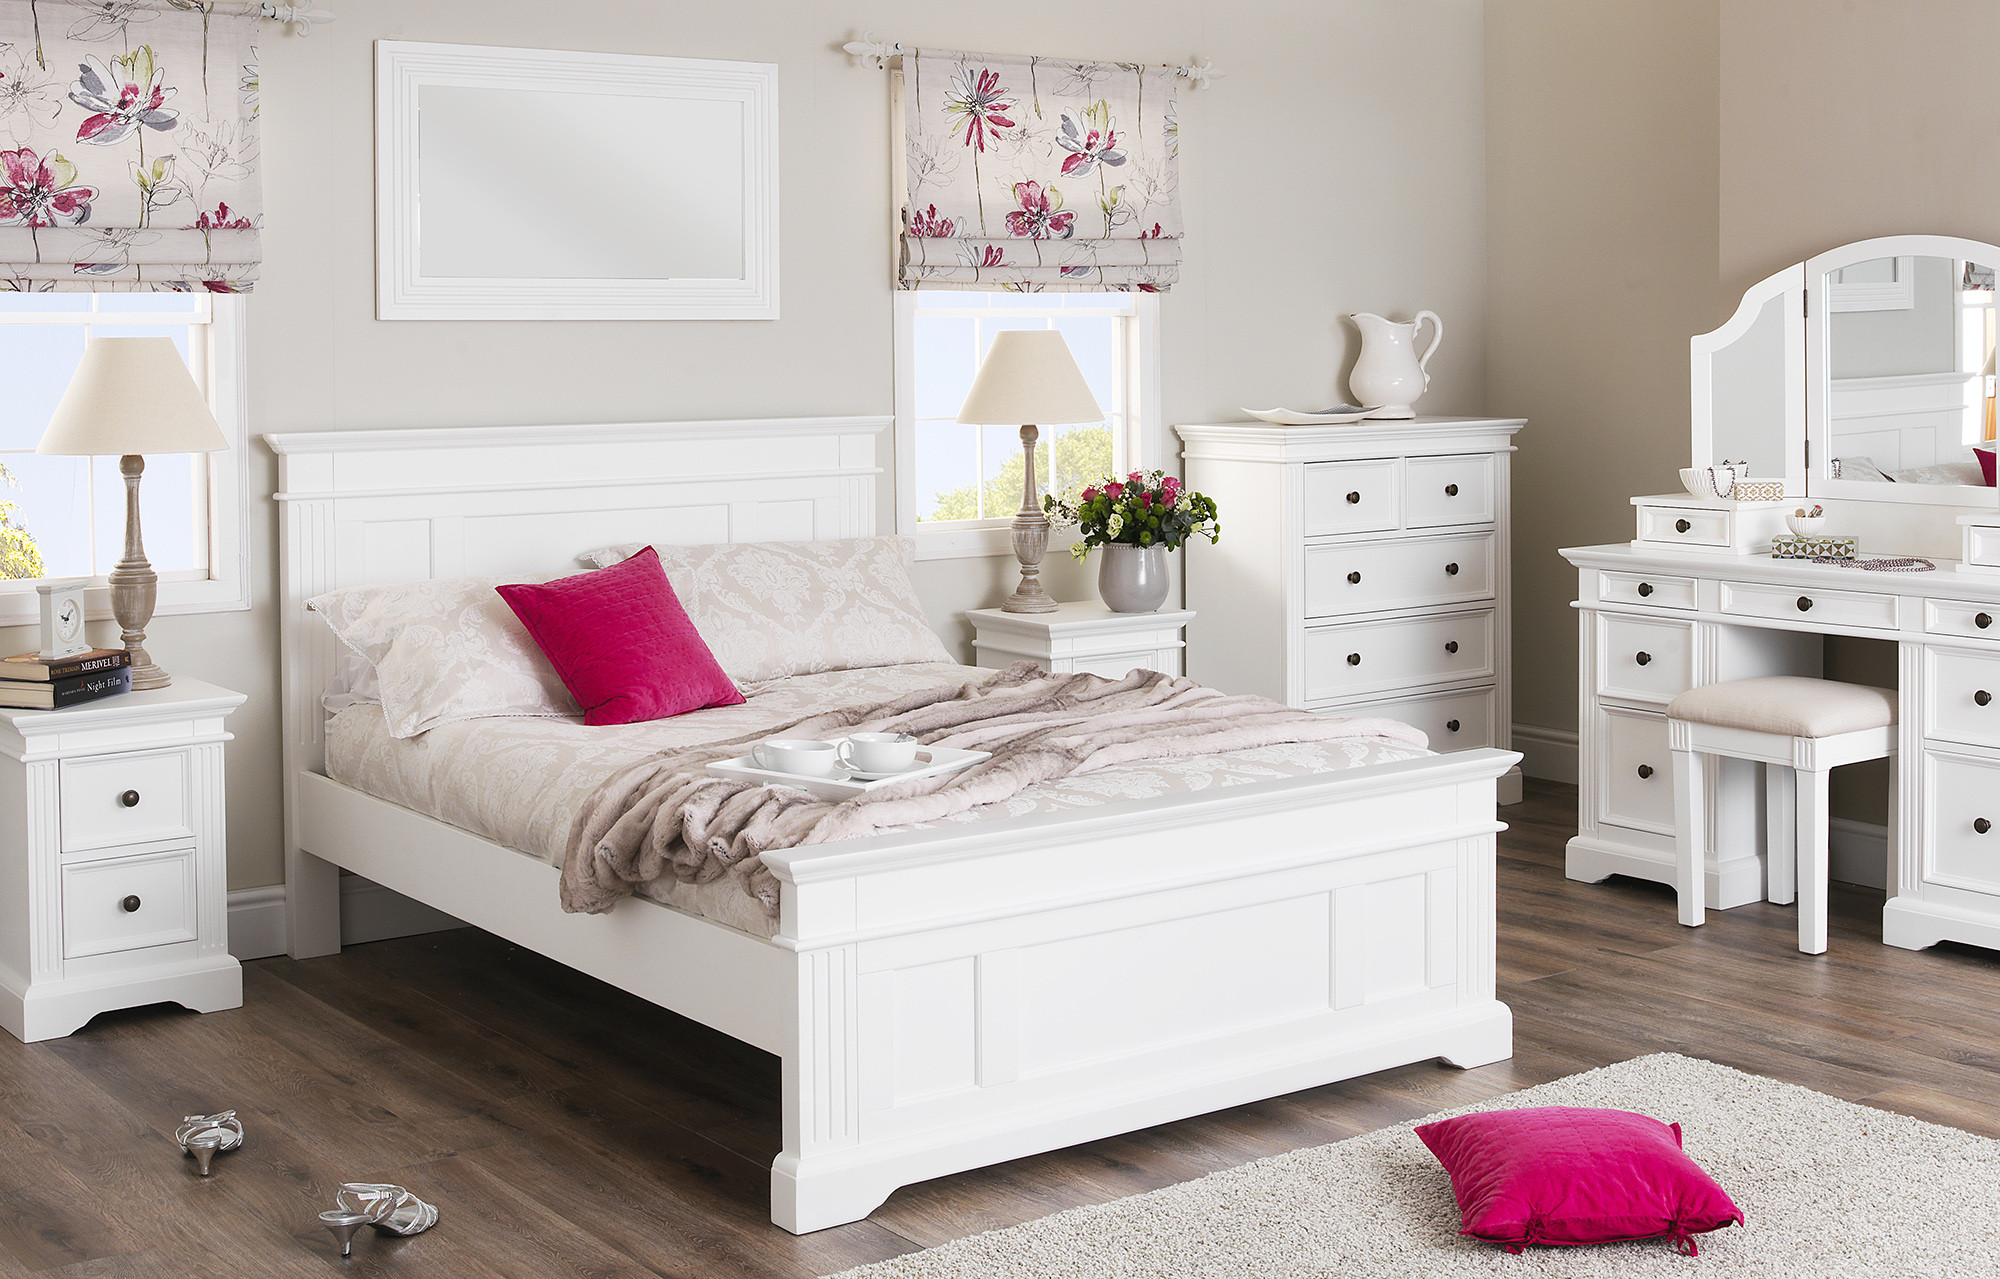 Best ideas about Shabby Chic Bedroom Sets . Save or Pin Older times with shabby chic bedroom furniture Now.